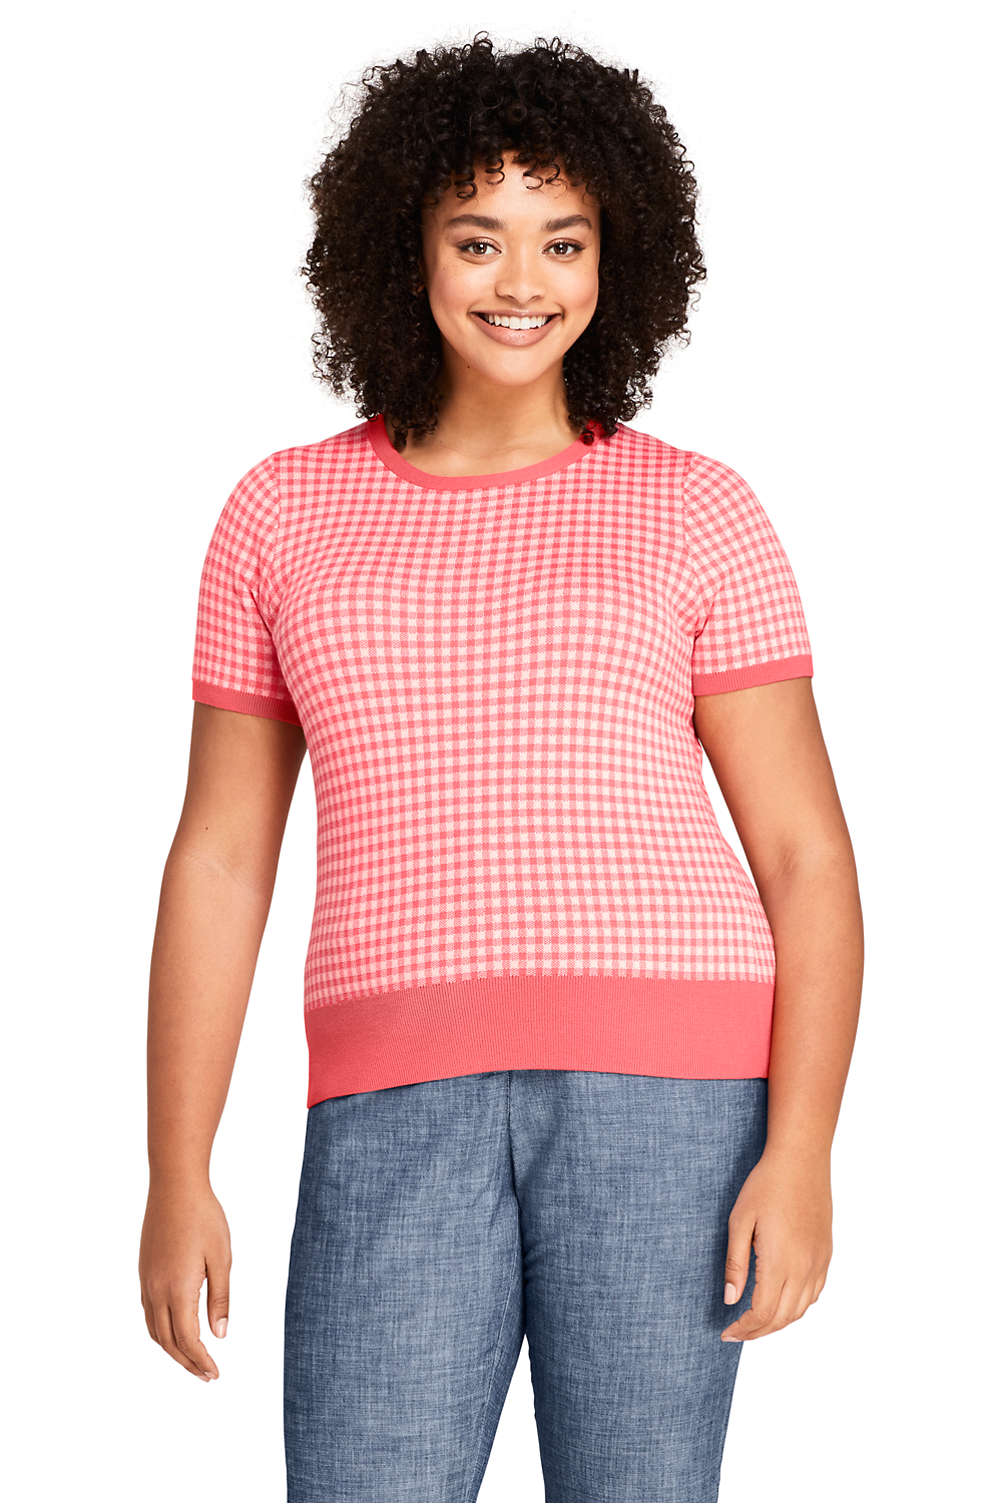 646cb9c760 Women s Plus Size Short Sleeve Supima Jacquard Sweater from Lands  End